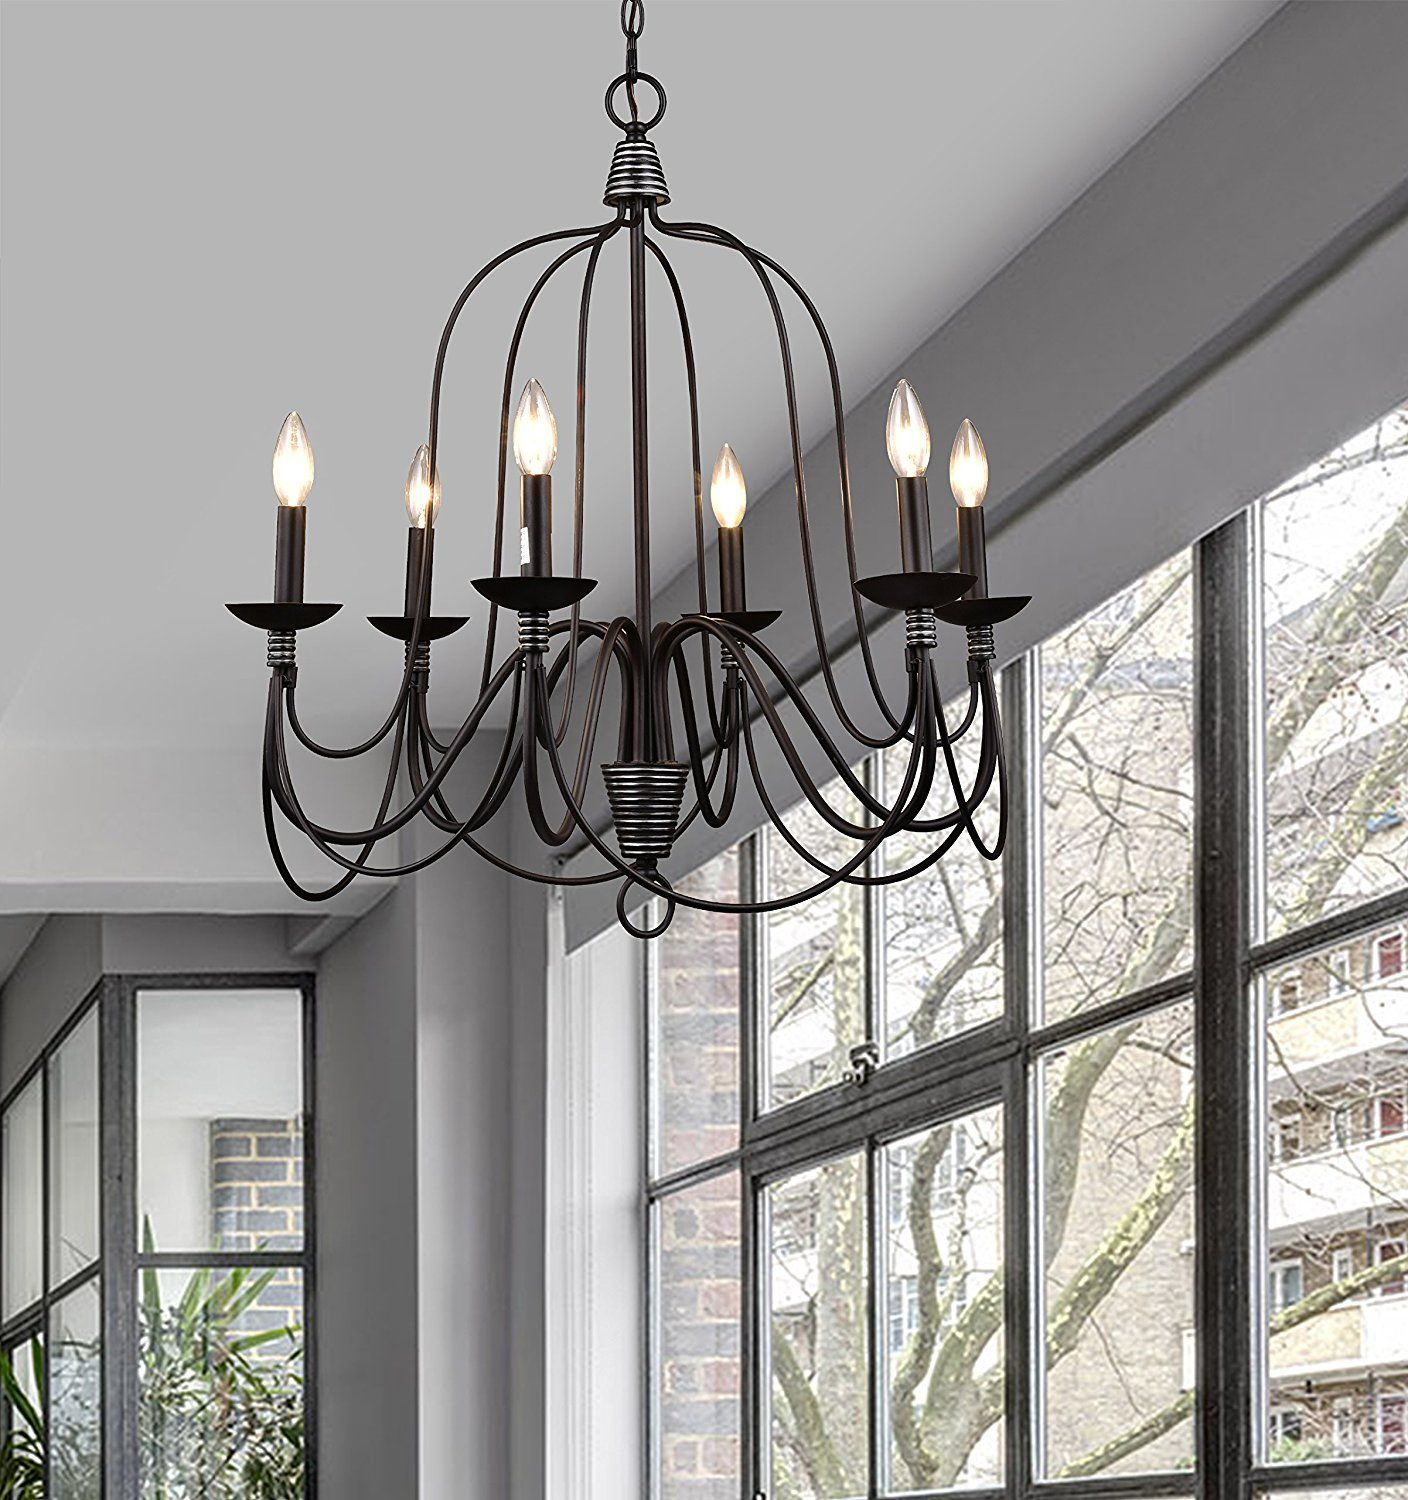 CLAXY Ecopower Lighting Industrial Vintage 6 Lights Candle Chandeliers